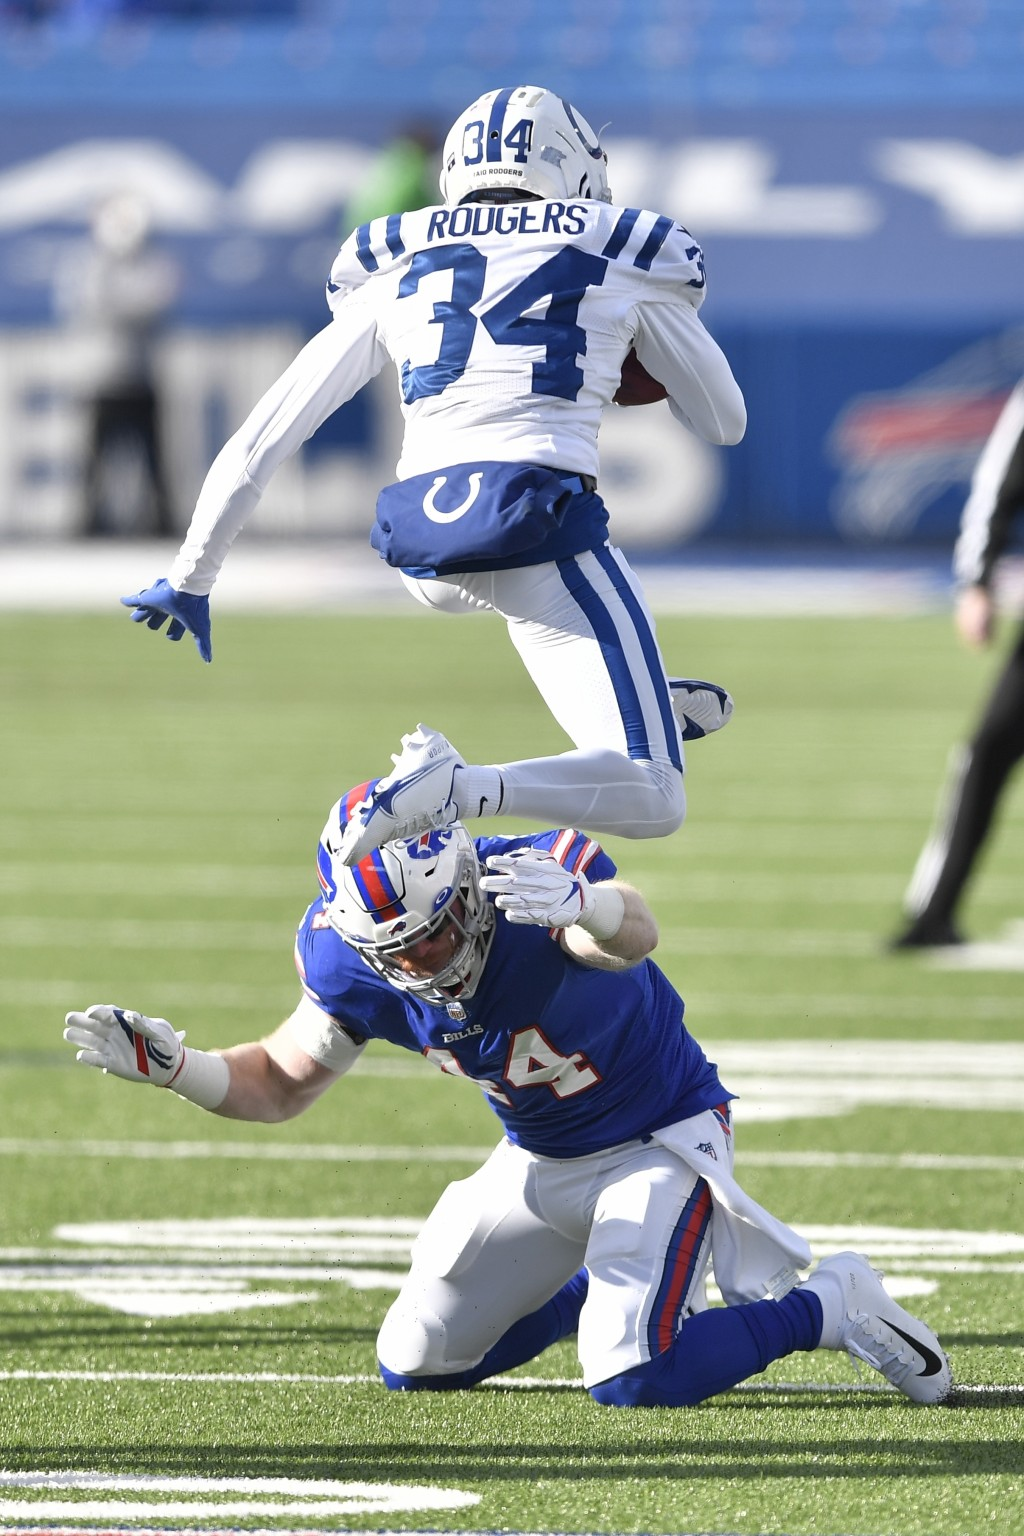 Indianapolis Colts' Isaiah Rodgers (34) leaps over Buffalo Bills' Tyler Matakevich (44) while while returning a kickoff during the first half of an NF...